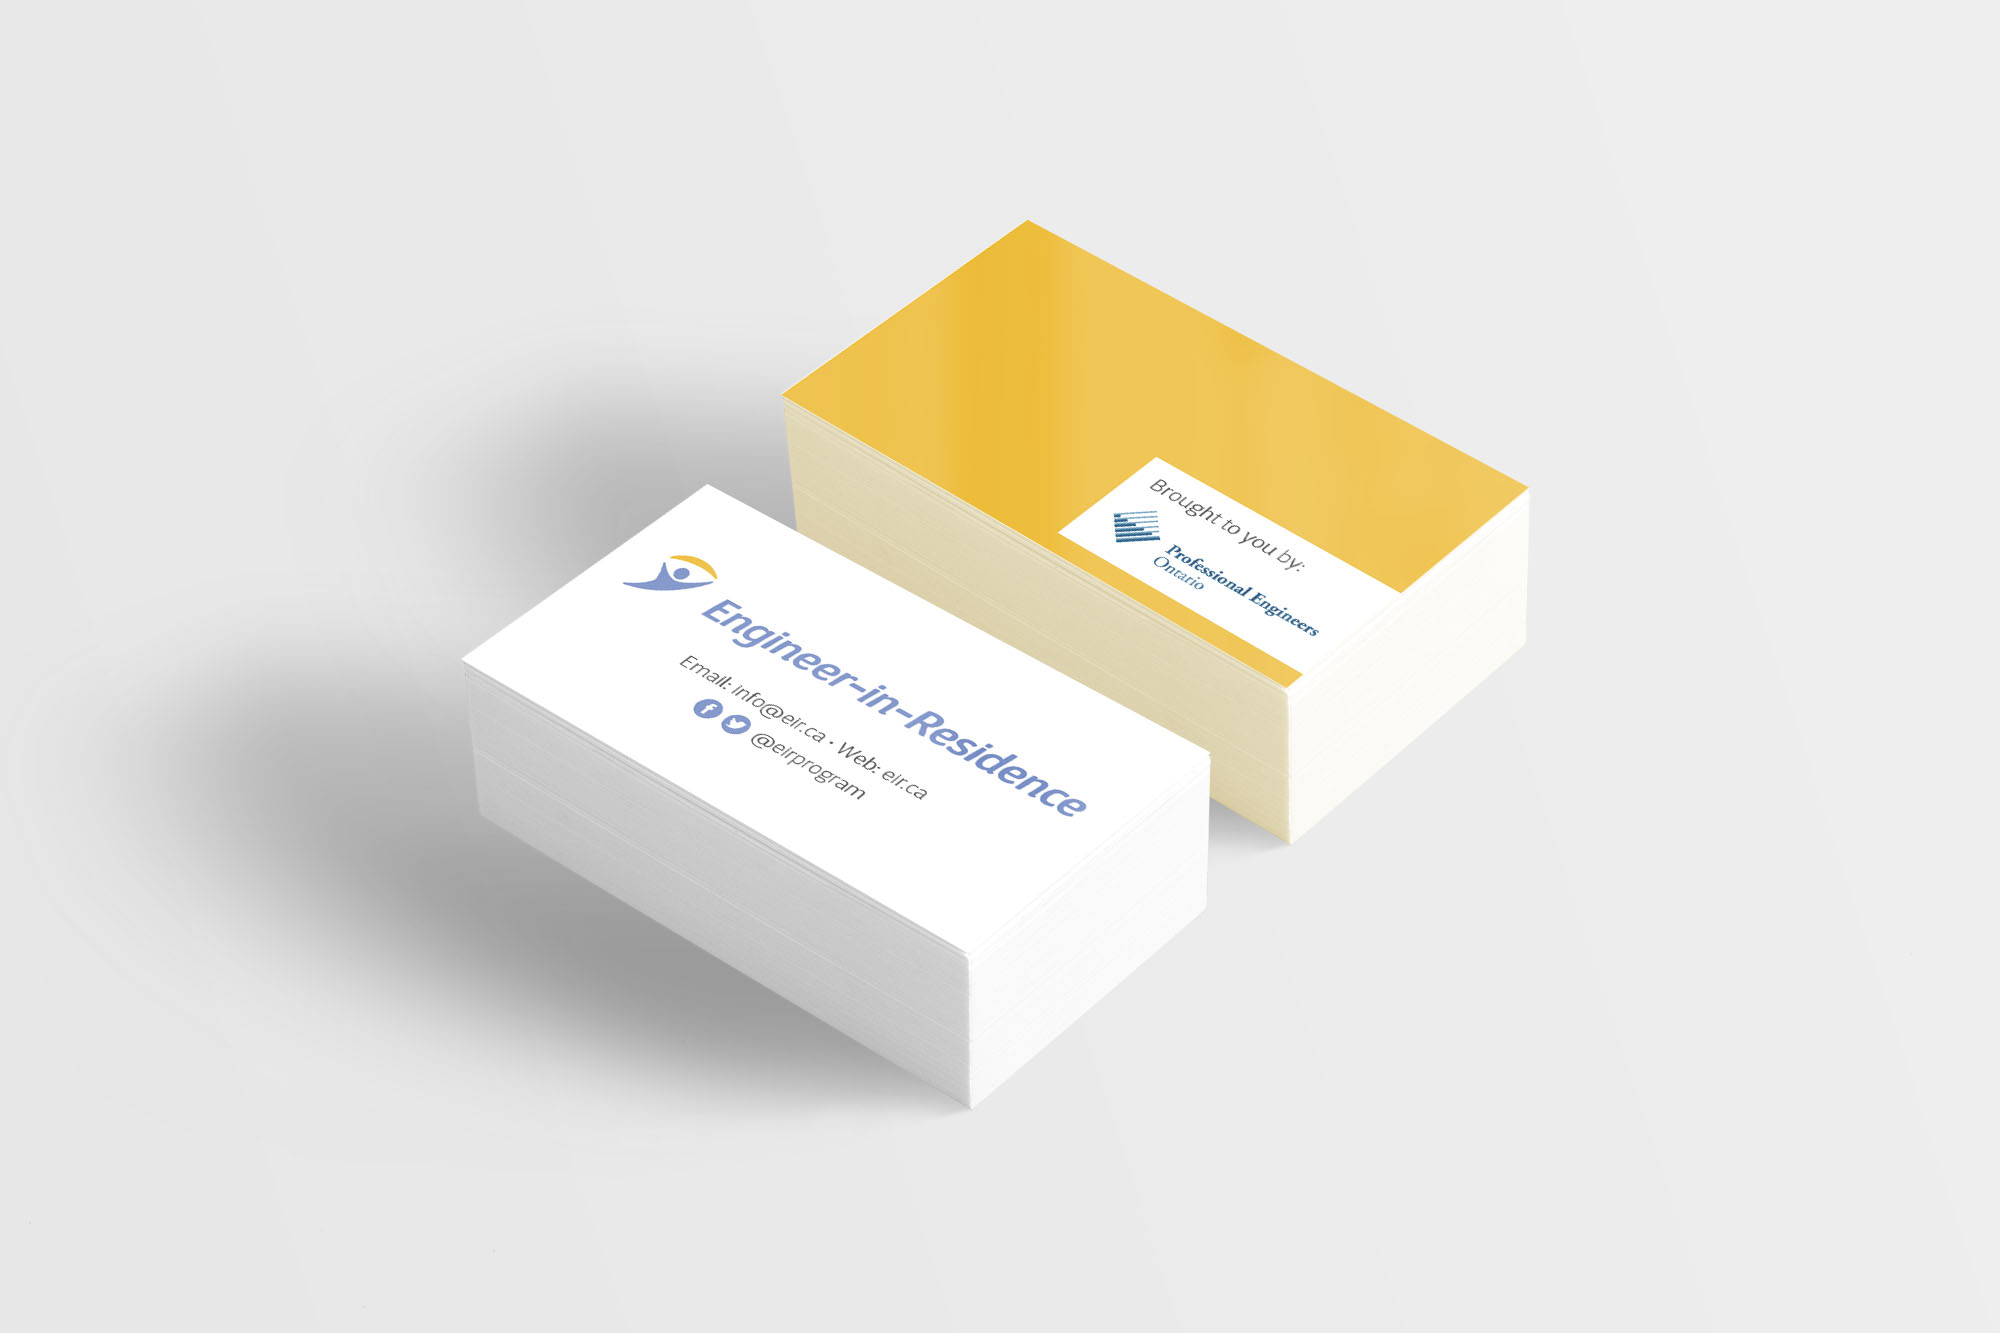 eir-business-card-v2-c.jpg